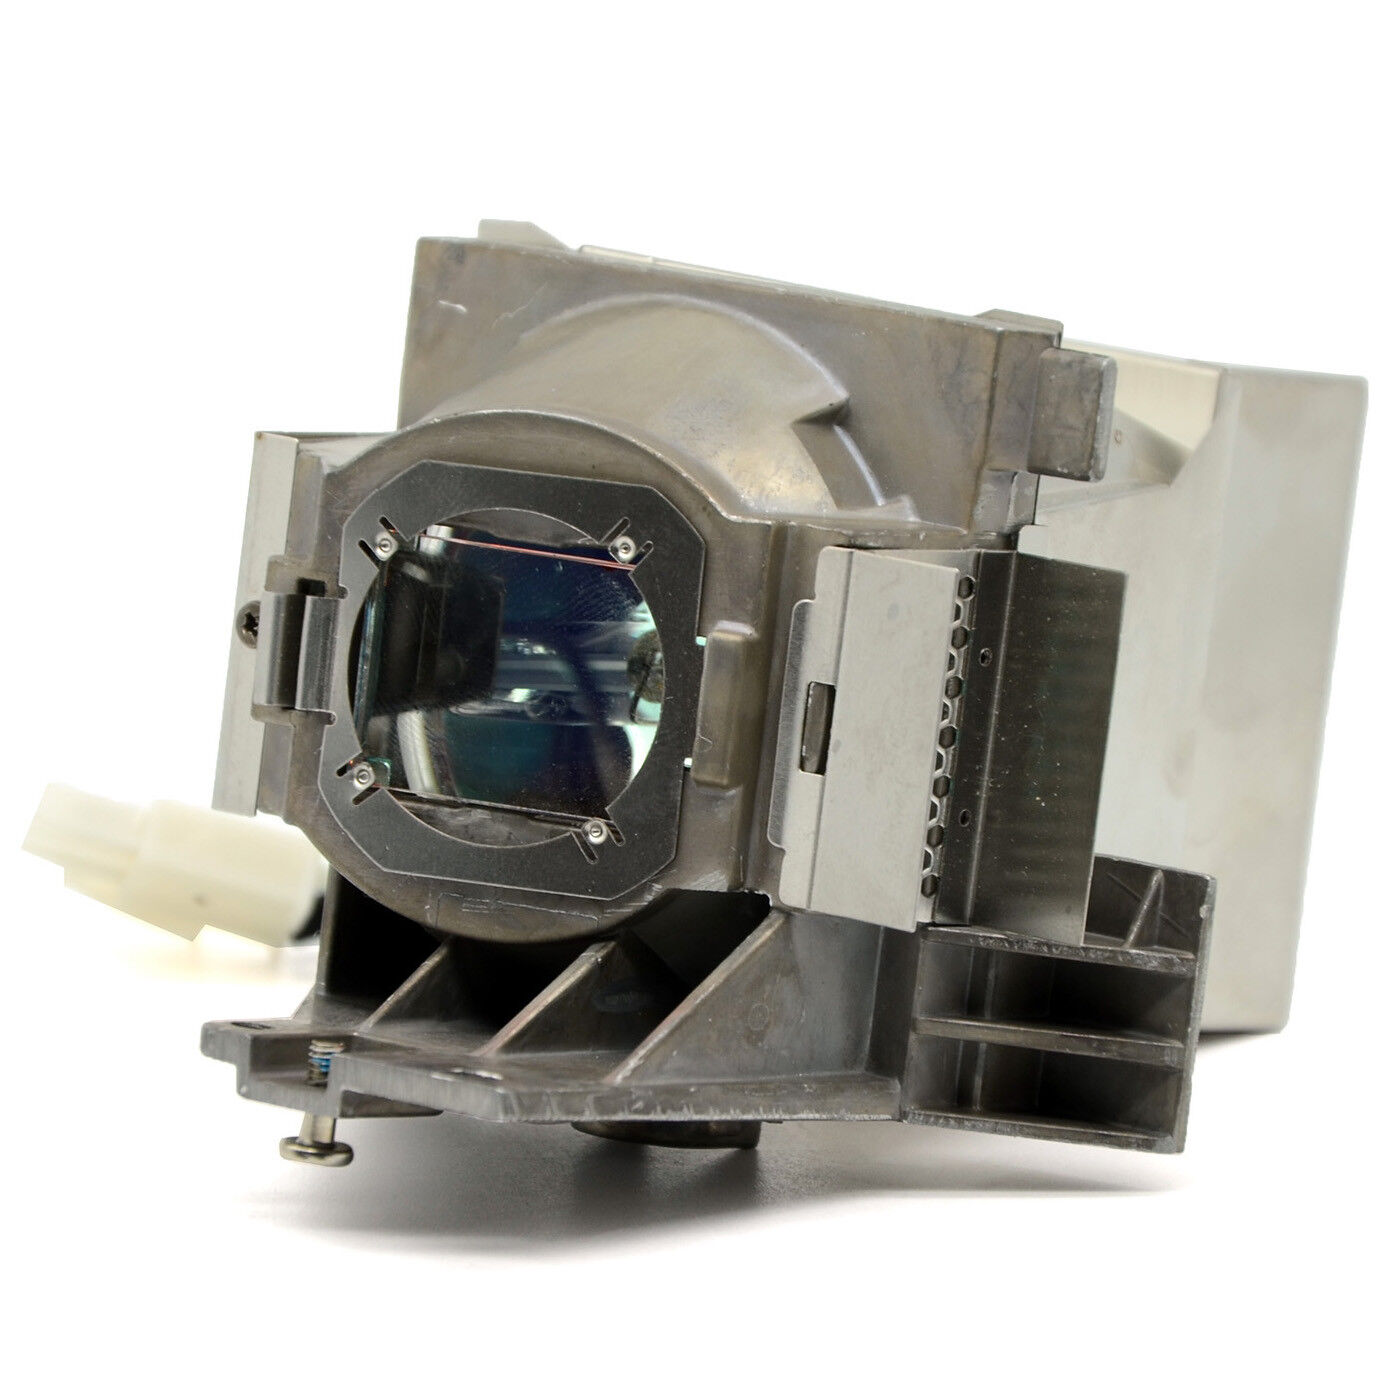 BENQ HT2050 Projector Replacement Lamp with OEM Osram PVIP bulb inside